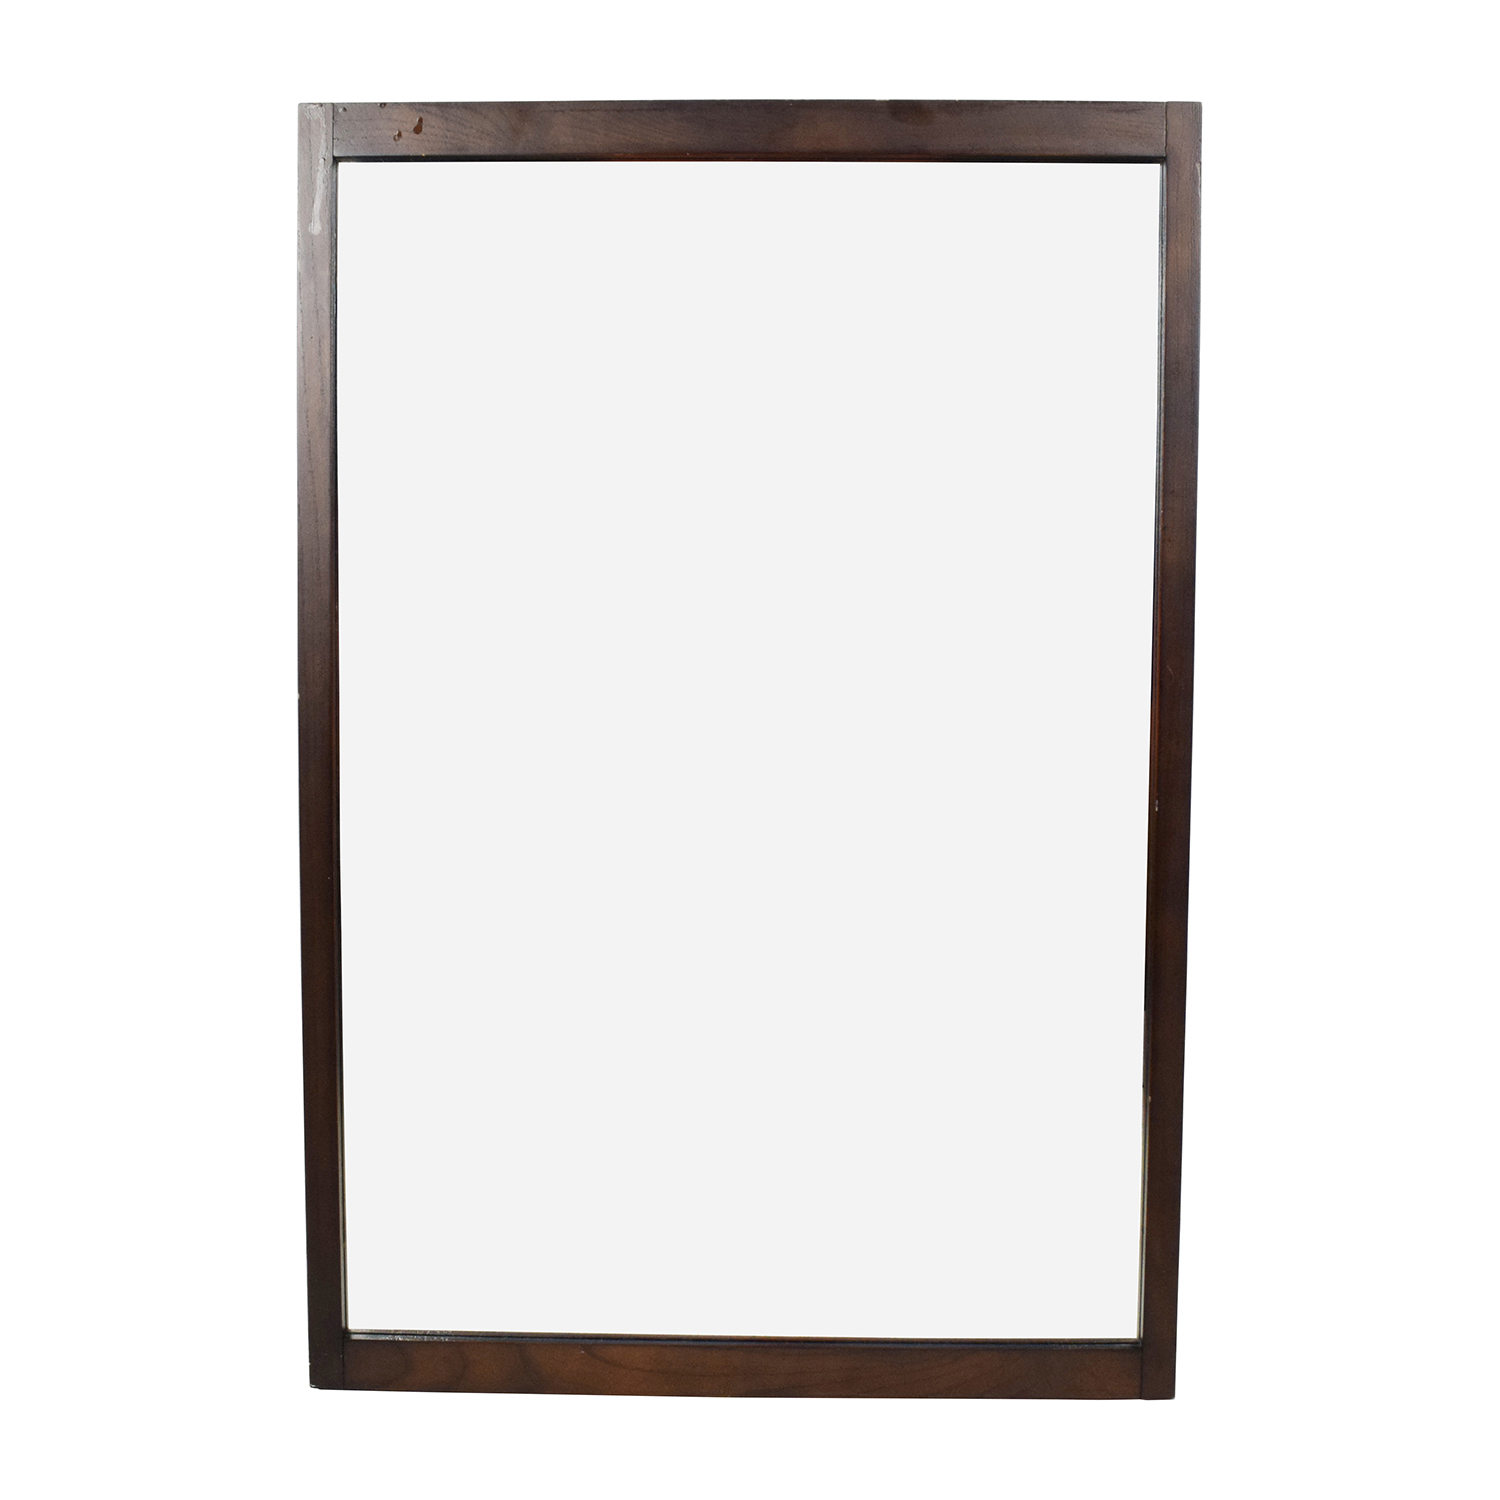 Pottery Barn Pottery Barn Wood Framed Mirror for sale